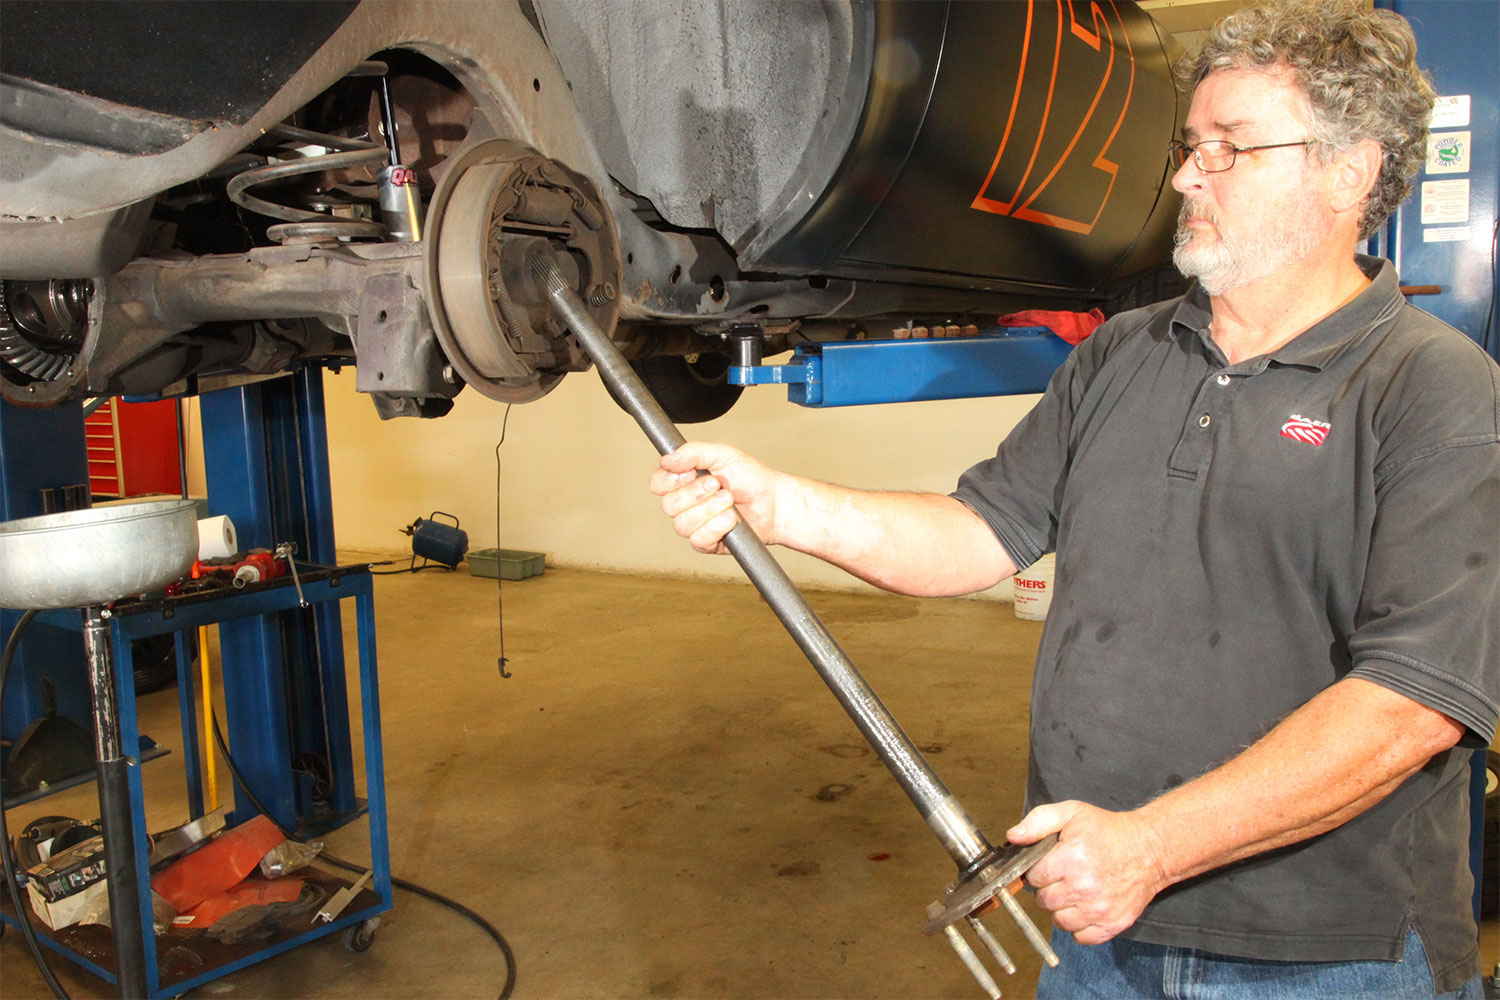 The bearings on our 10-bolt were upgraded while we were at Baer Brakes upgrading the stock drums to Baer's SS4 rear discs. Here, Baer's Dutch Miller shows a trick for removing the stock axle seal. Dutch is using the end of the axle to pry out the seal, which will not be reused.